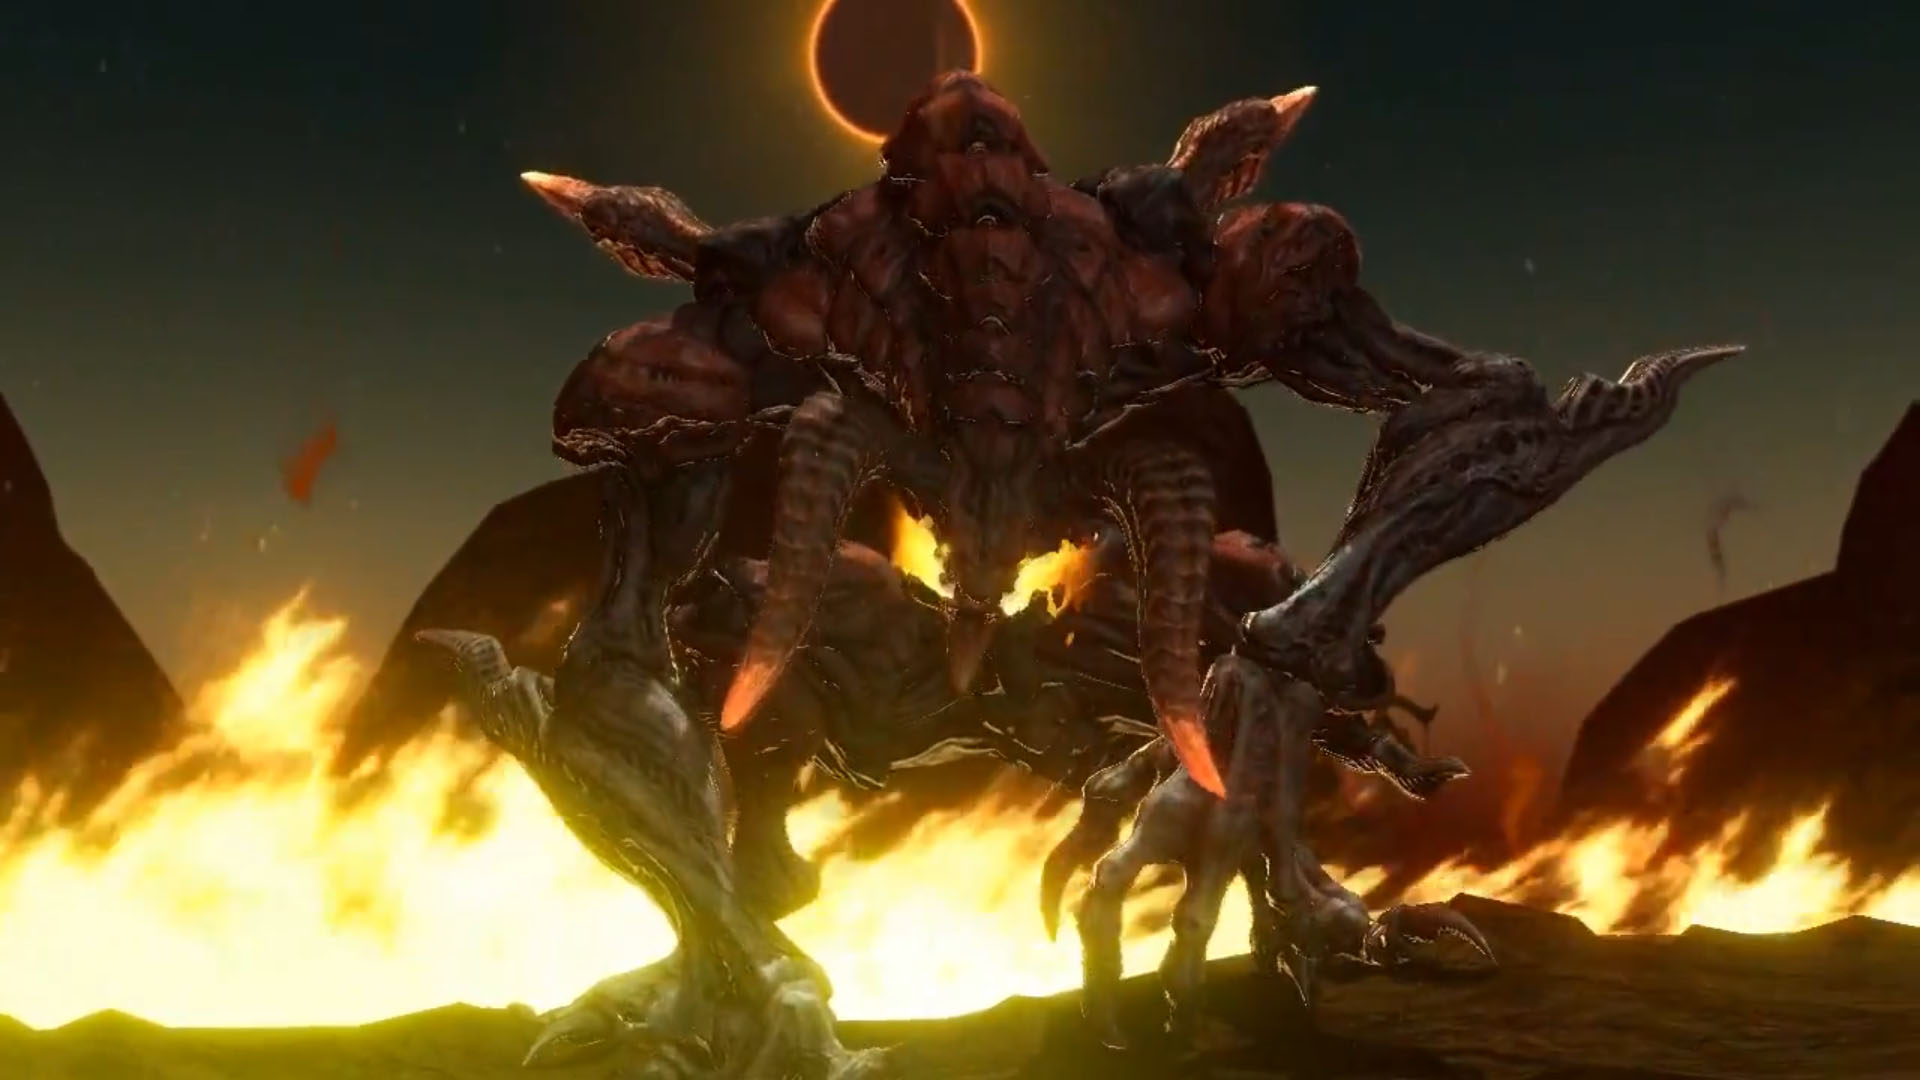 Final Fantasy XIV Ifrit Boss Fight Showcased 119 Patch